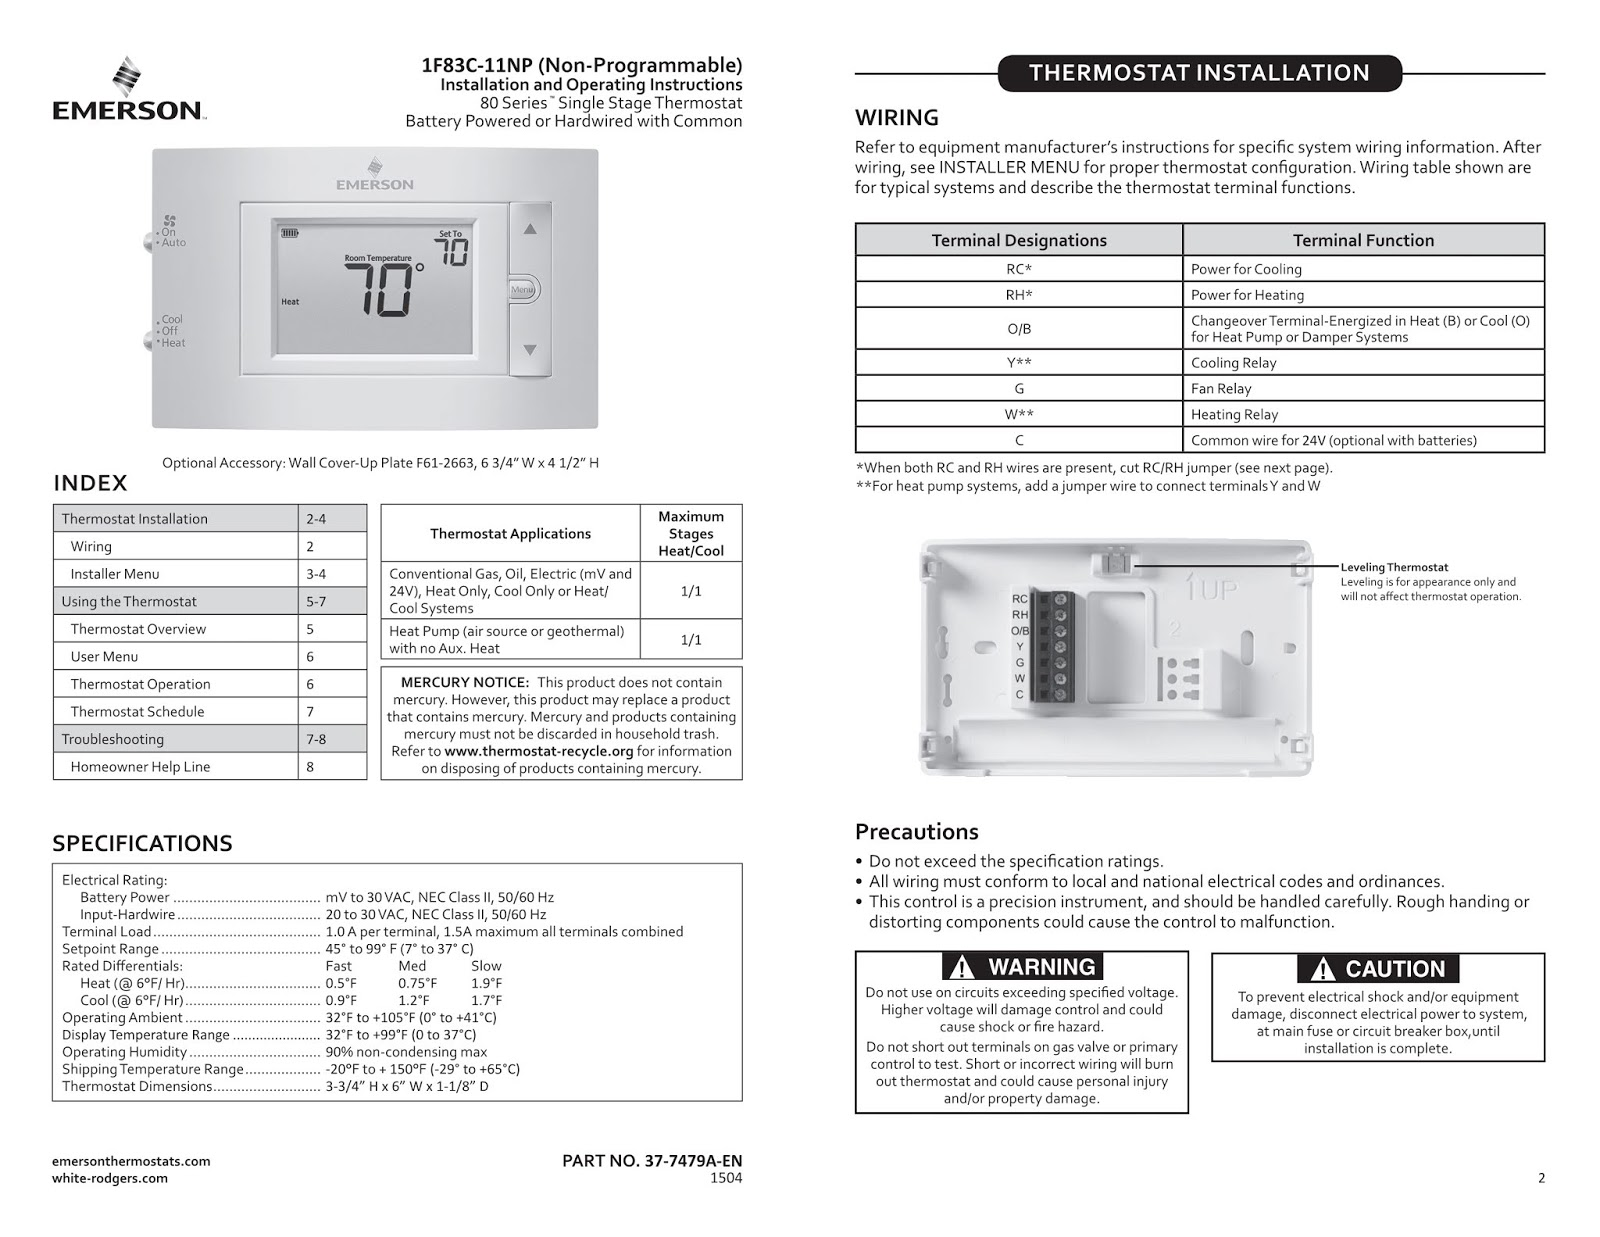 Emerson 1F83C-11NP Thermostat User Manual